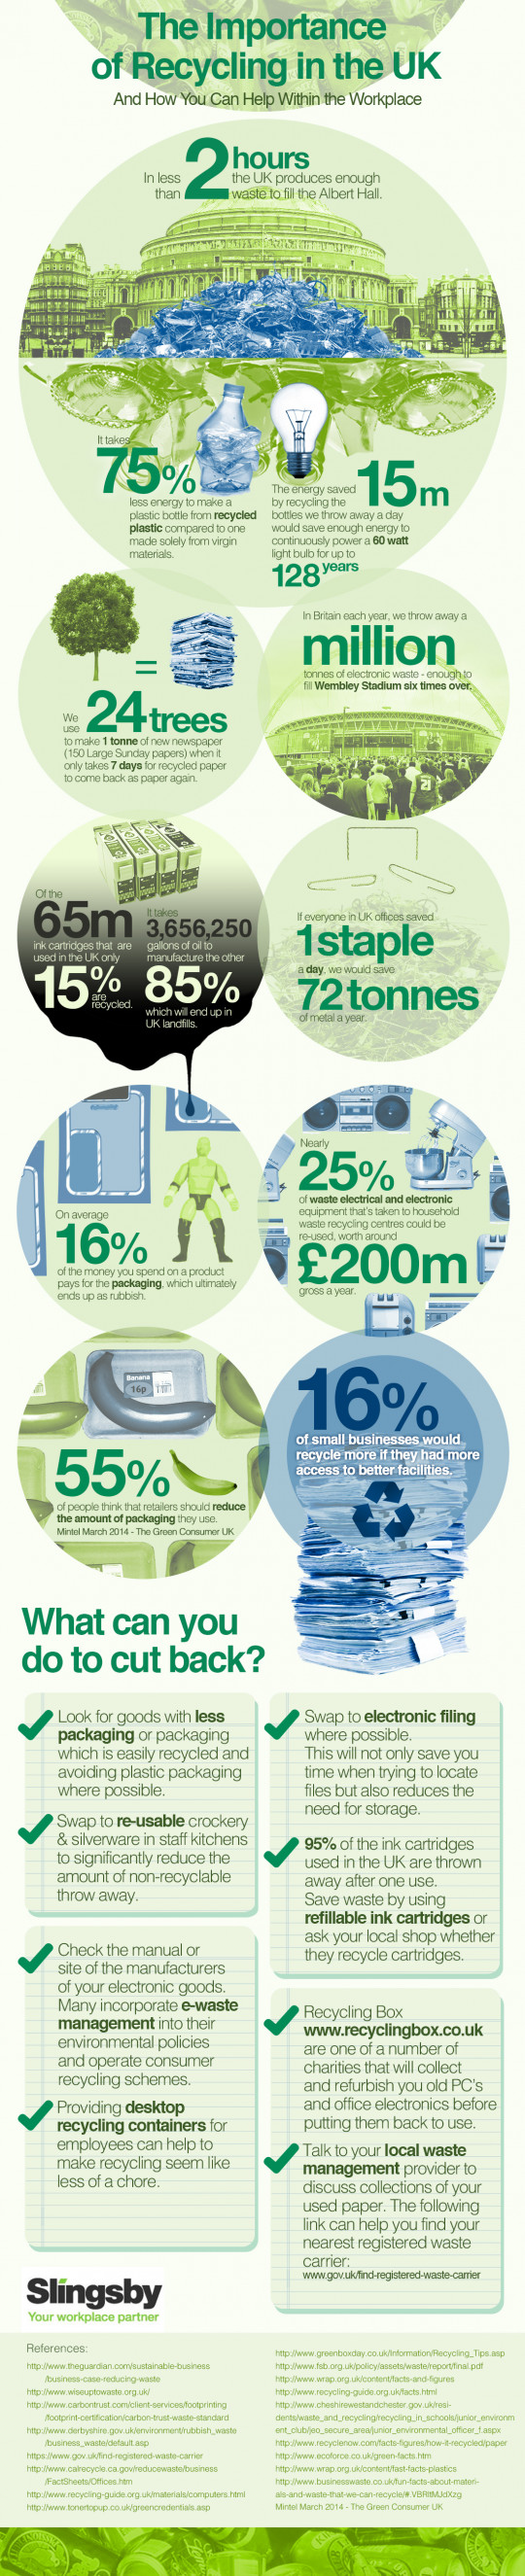 The Importance of Recycling in the UK